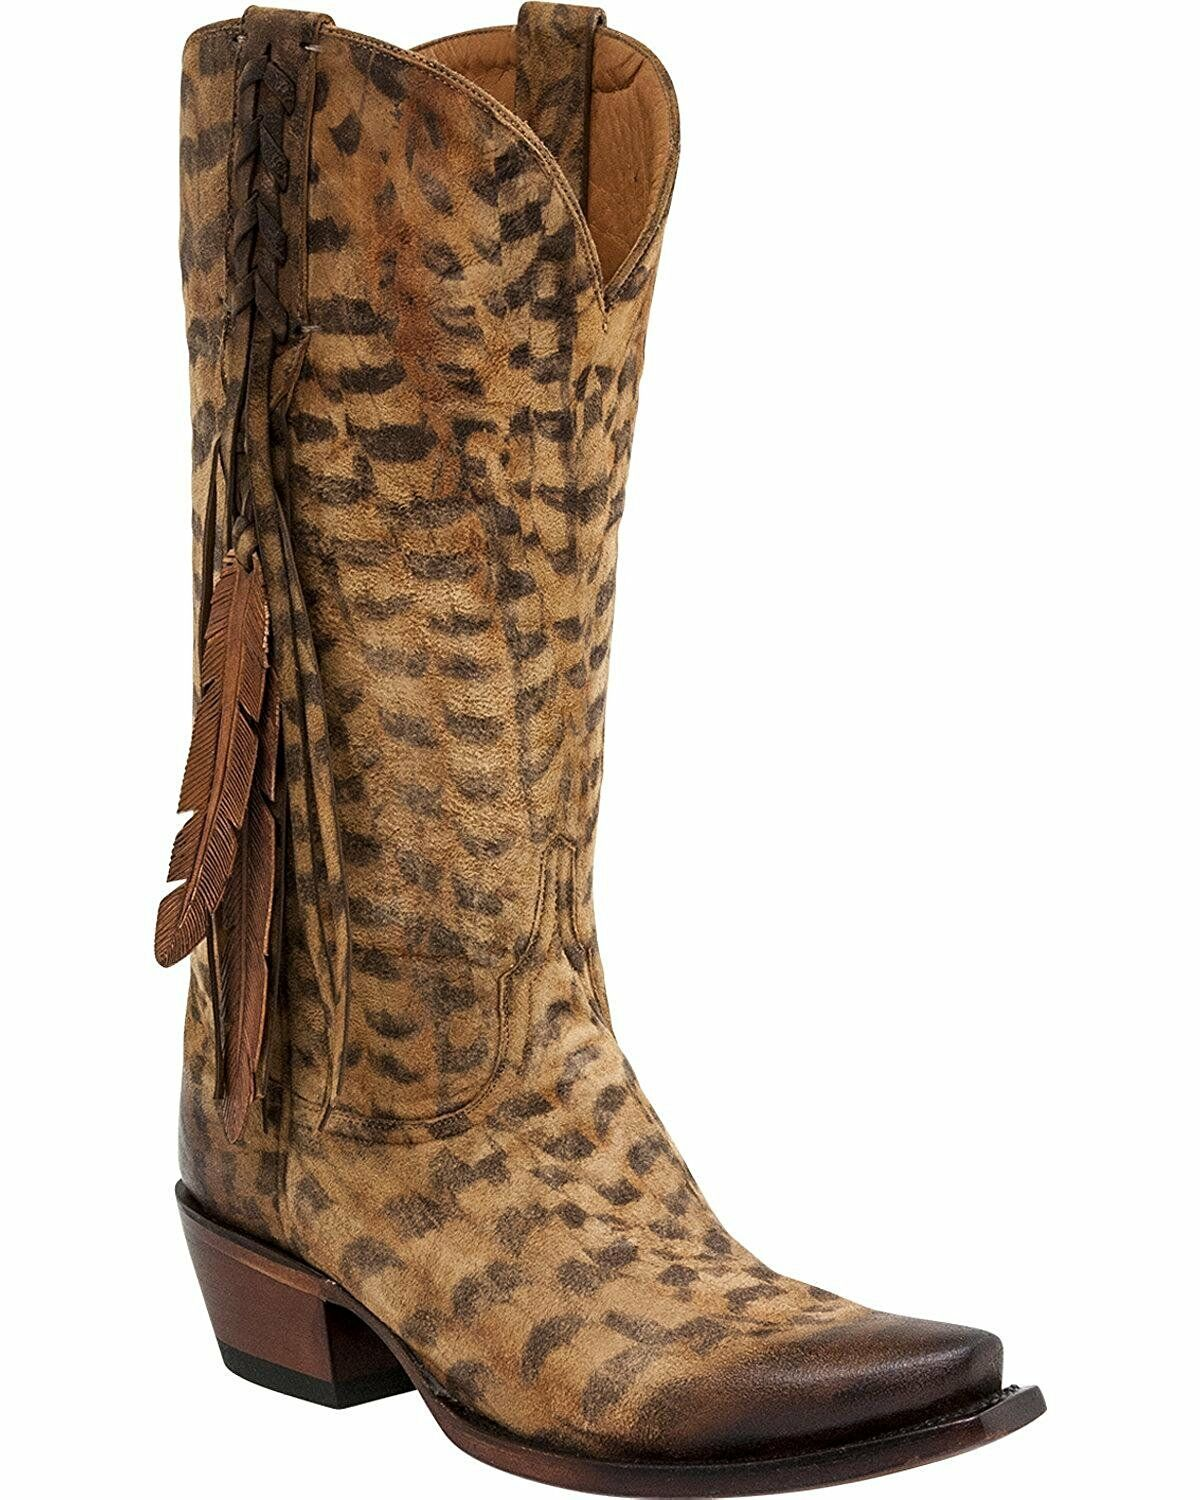 Lucchese M5105.S54 mujer Tori Hand Tooled Feather Cowgirl bota Snip Toe M